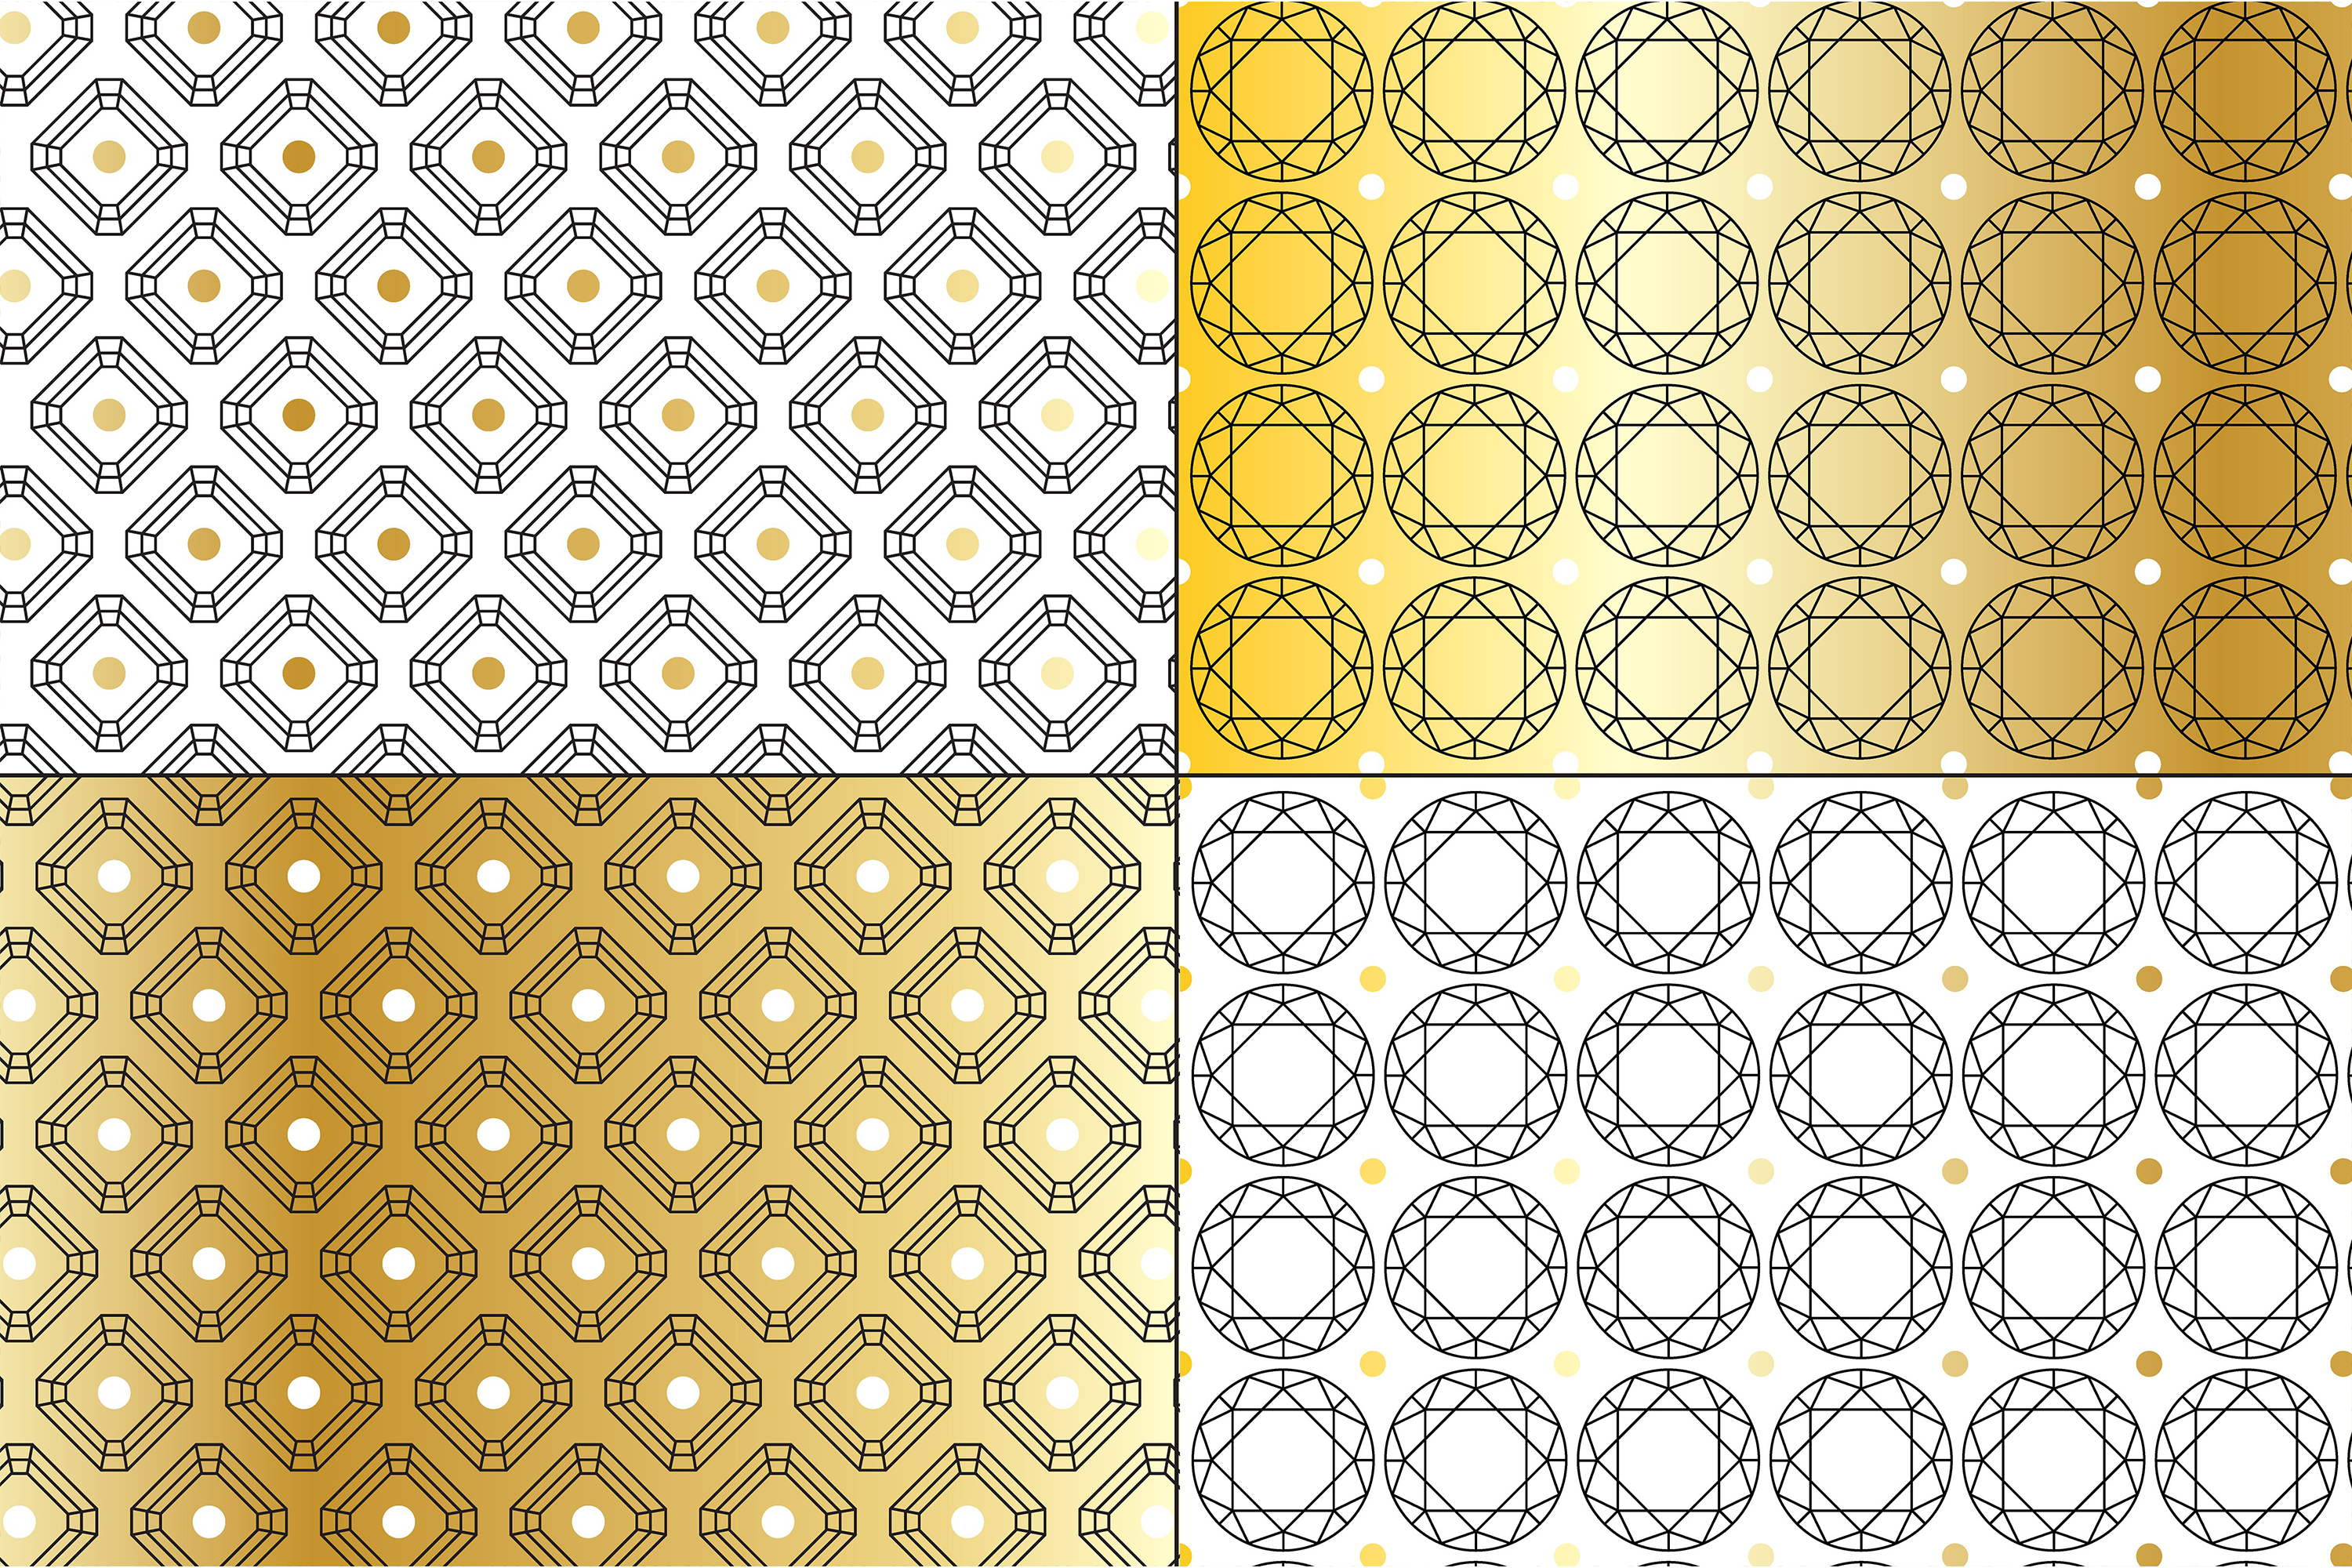 Gold Deco Patterns example image 3